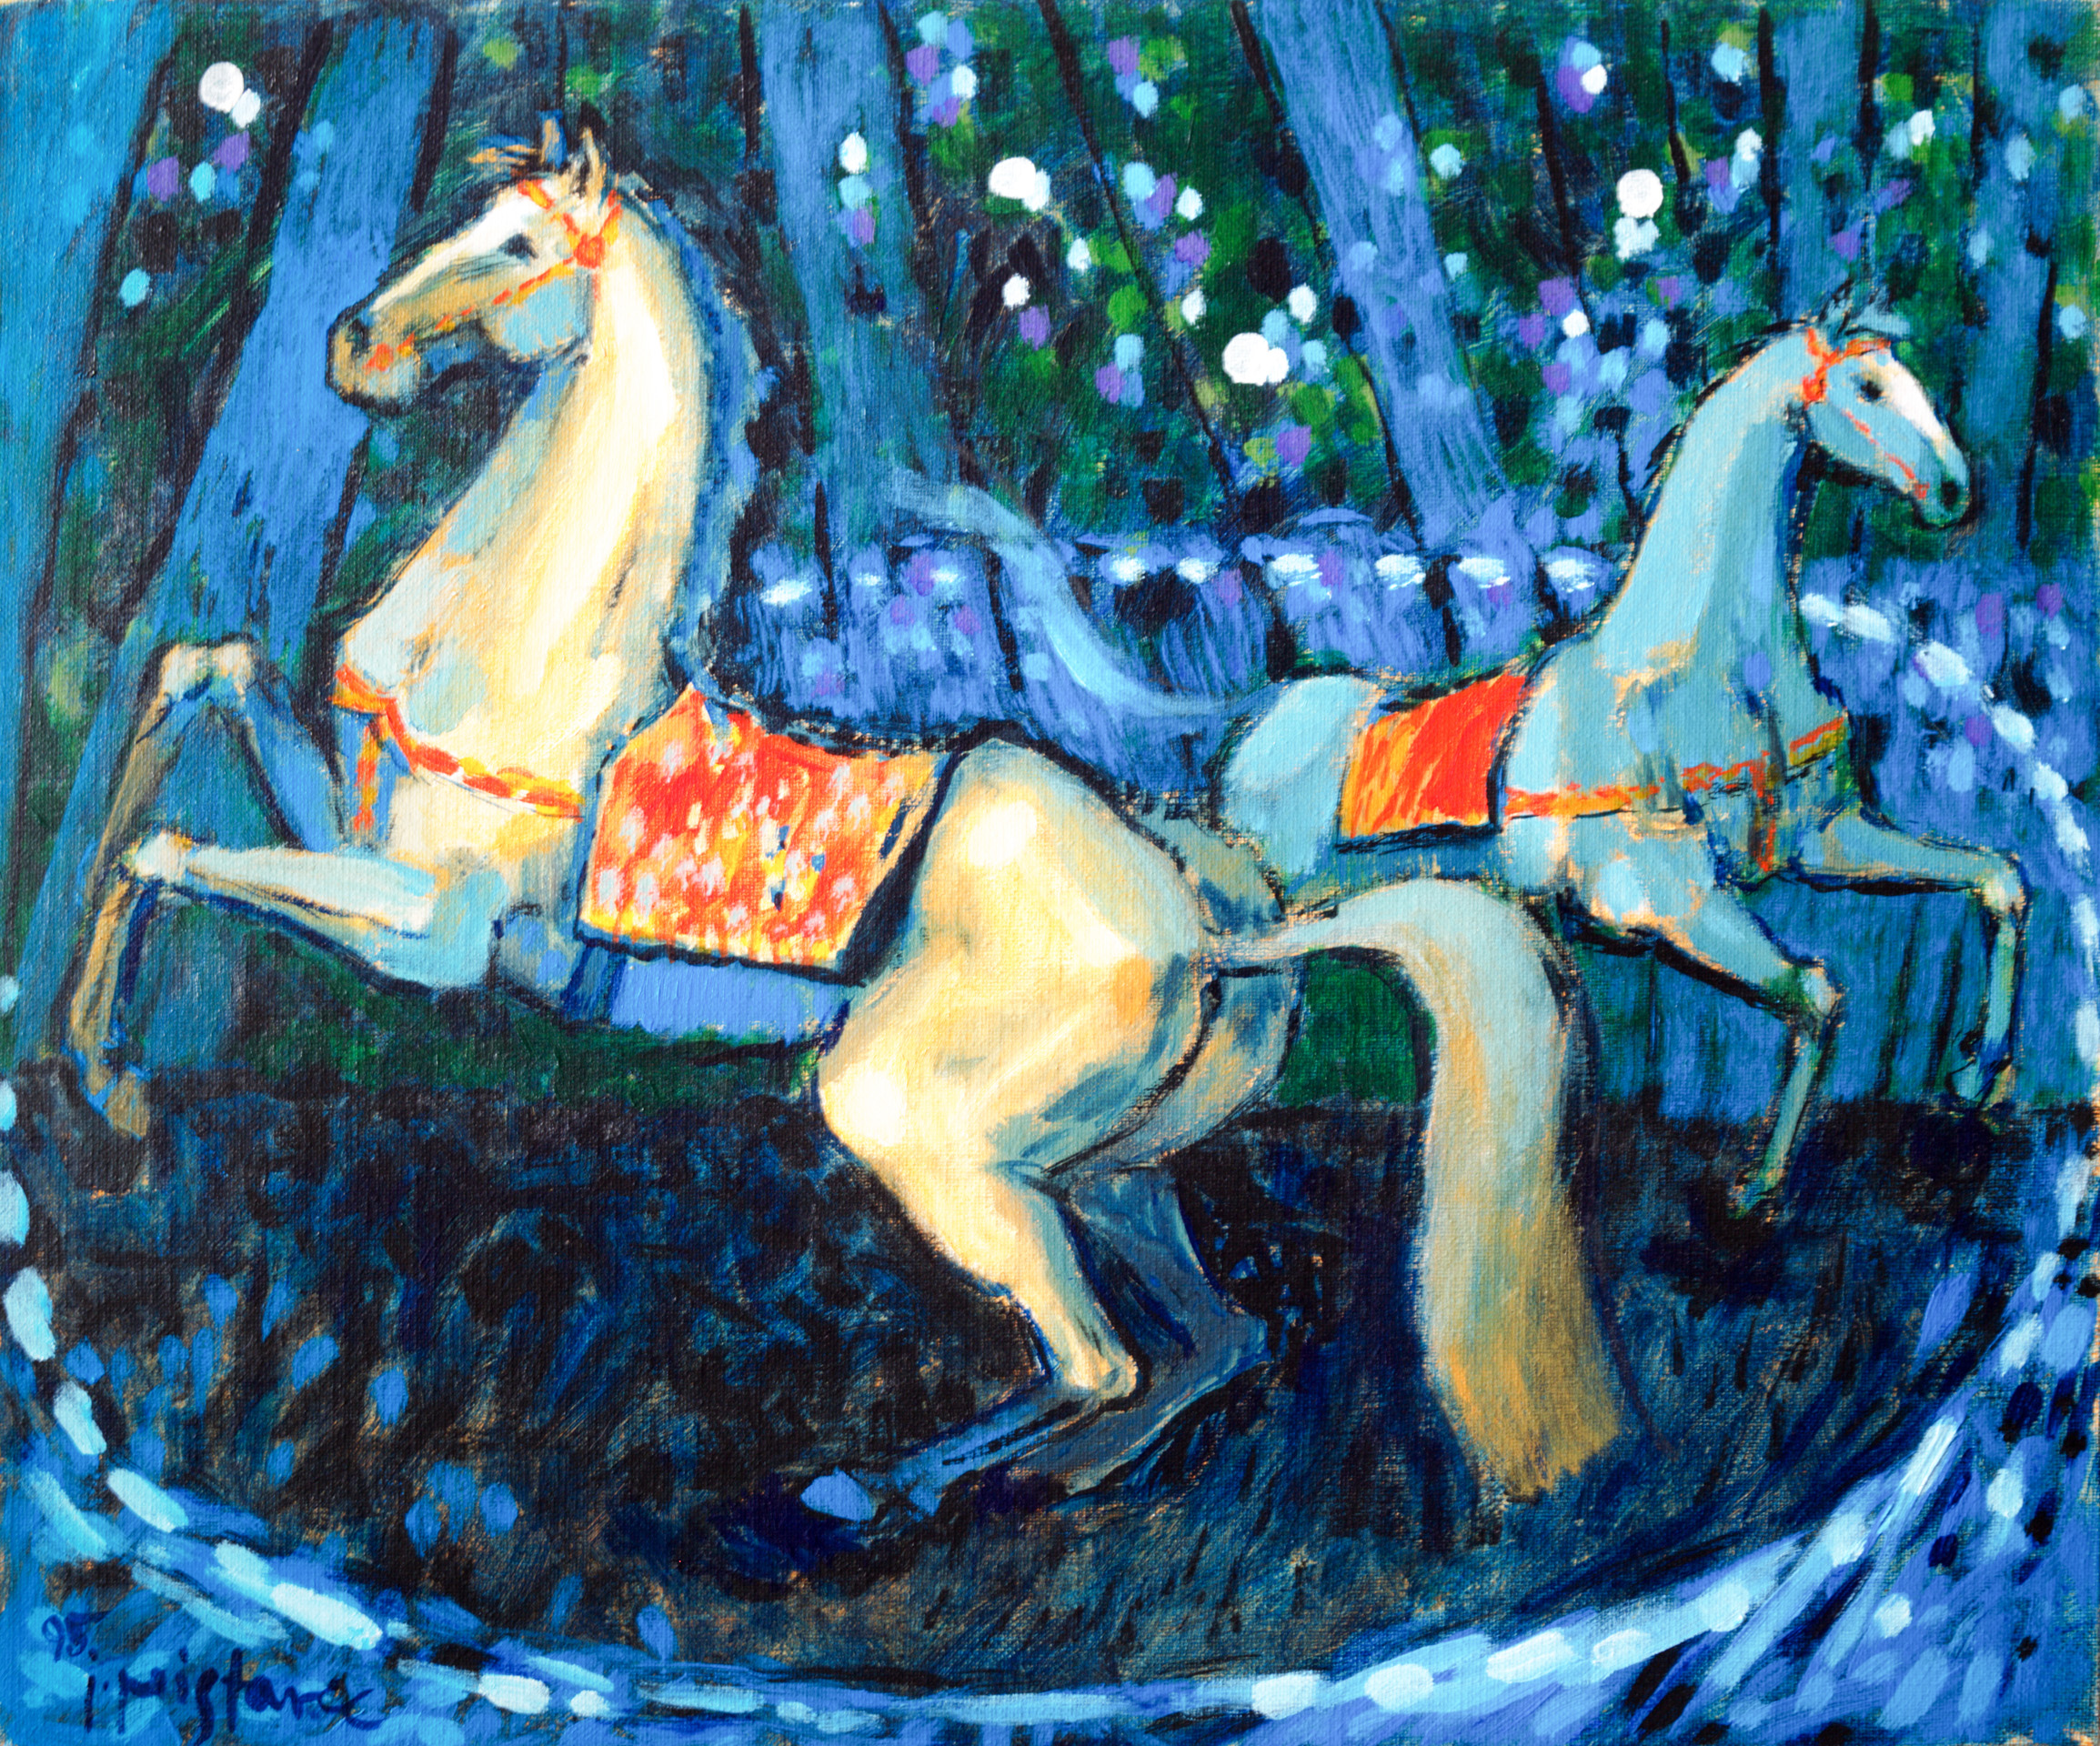 Horses  / 1995 / oil on canvas / 60 x 50 cm